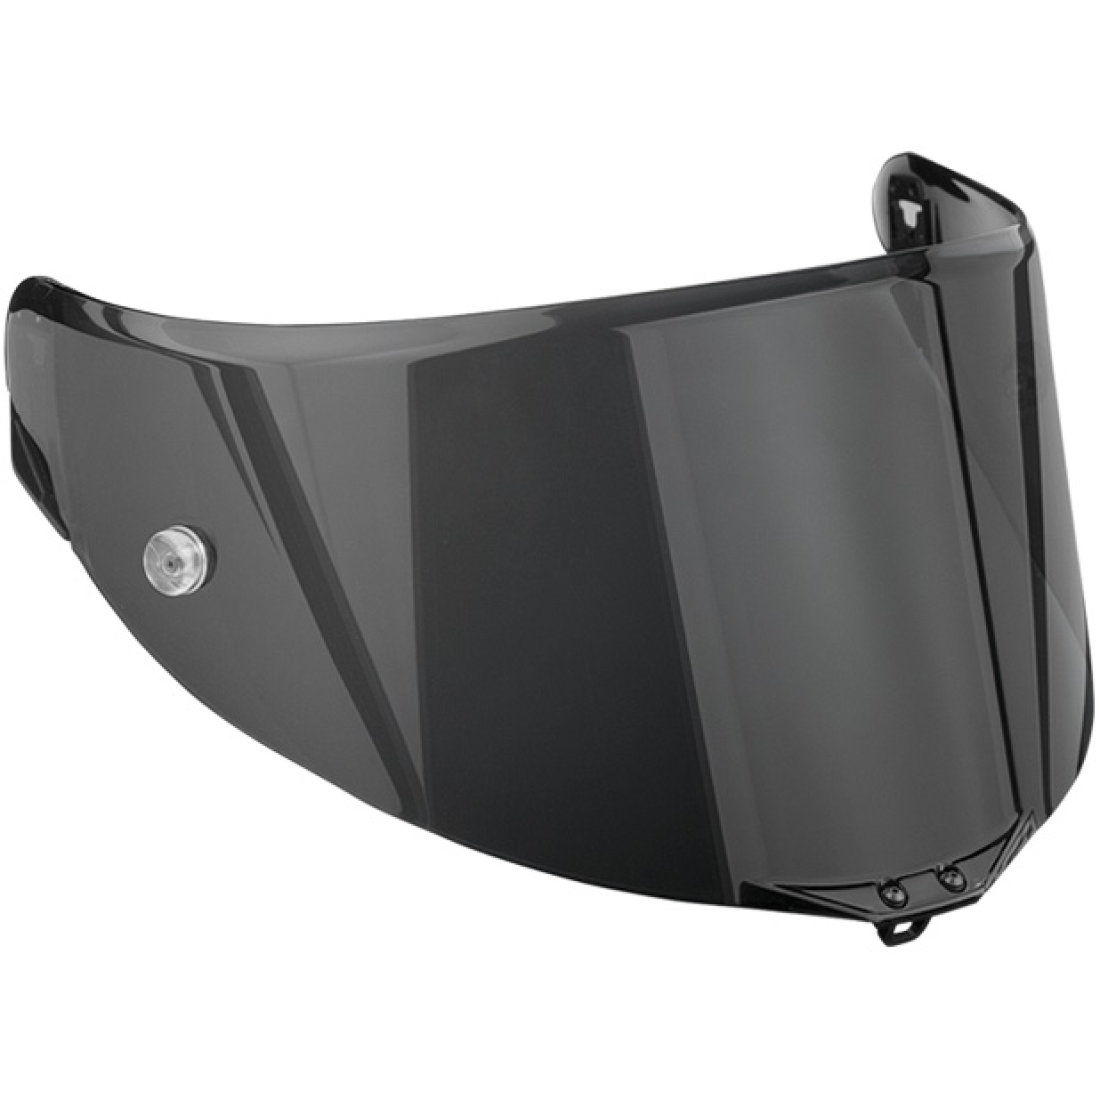 a2474cd6 241 Accessories for road motorbike helmets · Motocard